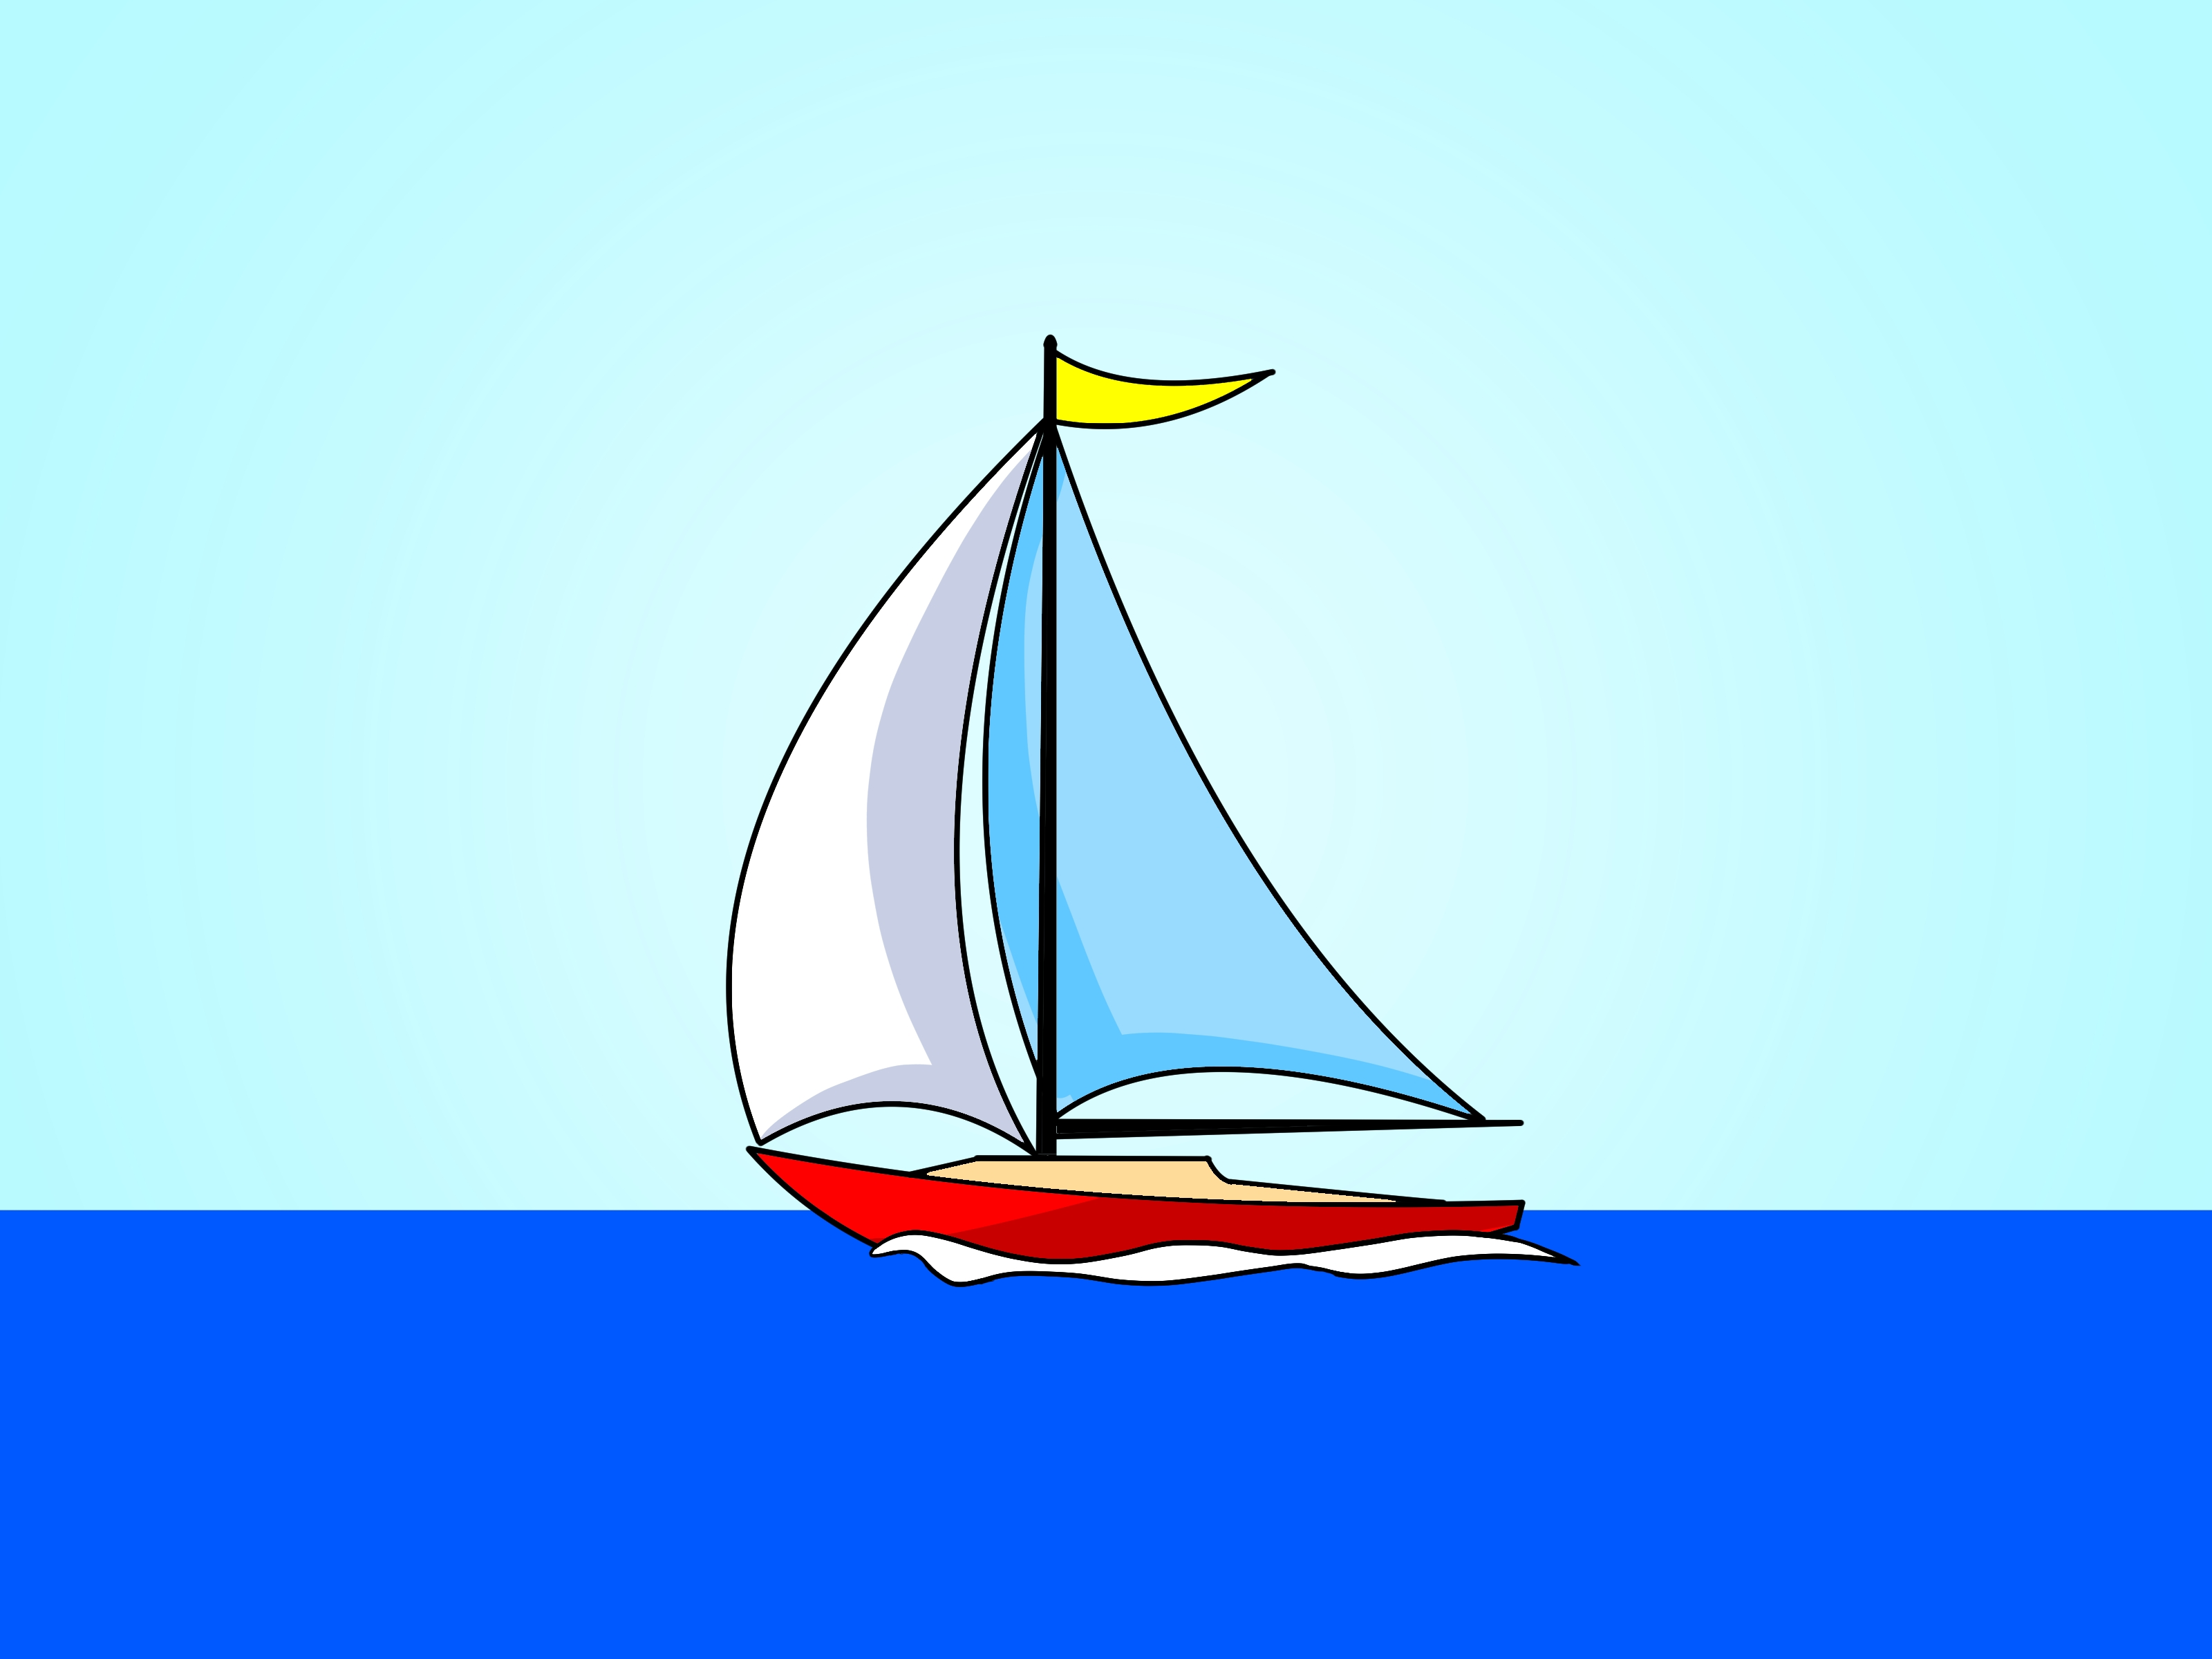 One Direction Baby Pictures - Capital Sailboat pictures for nursery